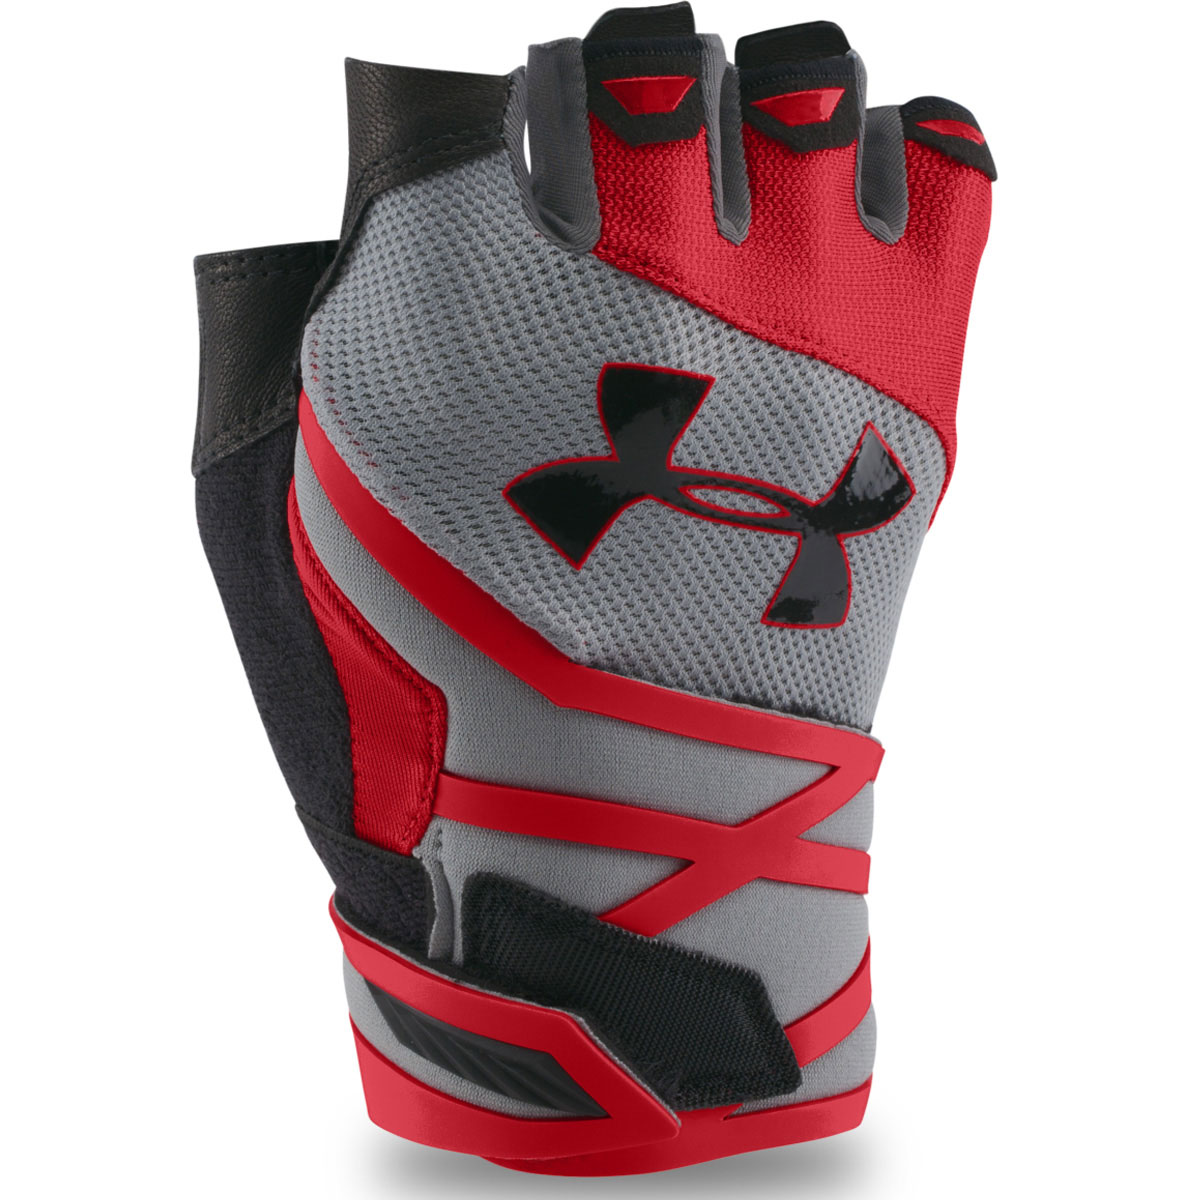 Under Armour Crossfit Gloves: Under Armour 2017 Mens UA Resistor Training Gloves Support